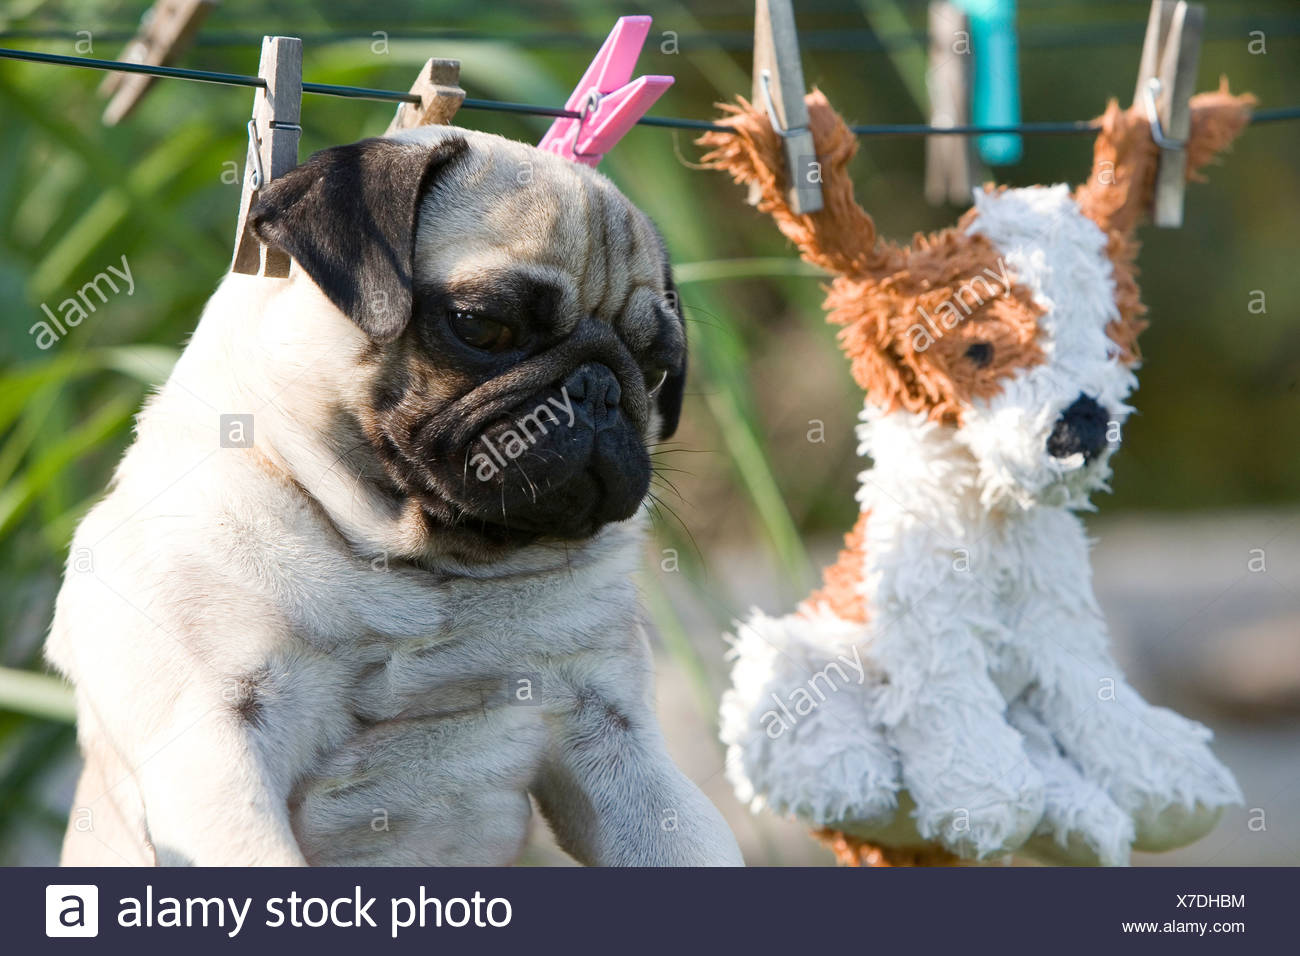 A pug and its freshly washed toy on the laundry line - Stock Image